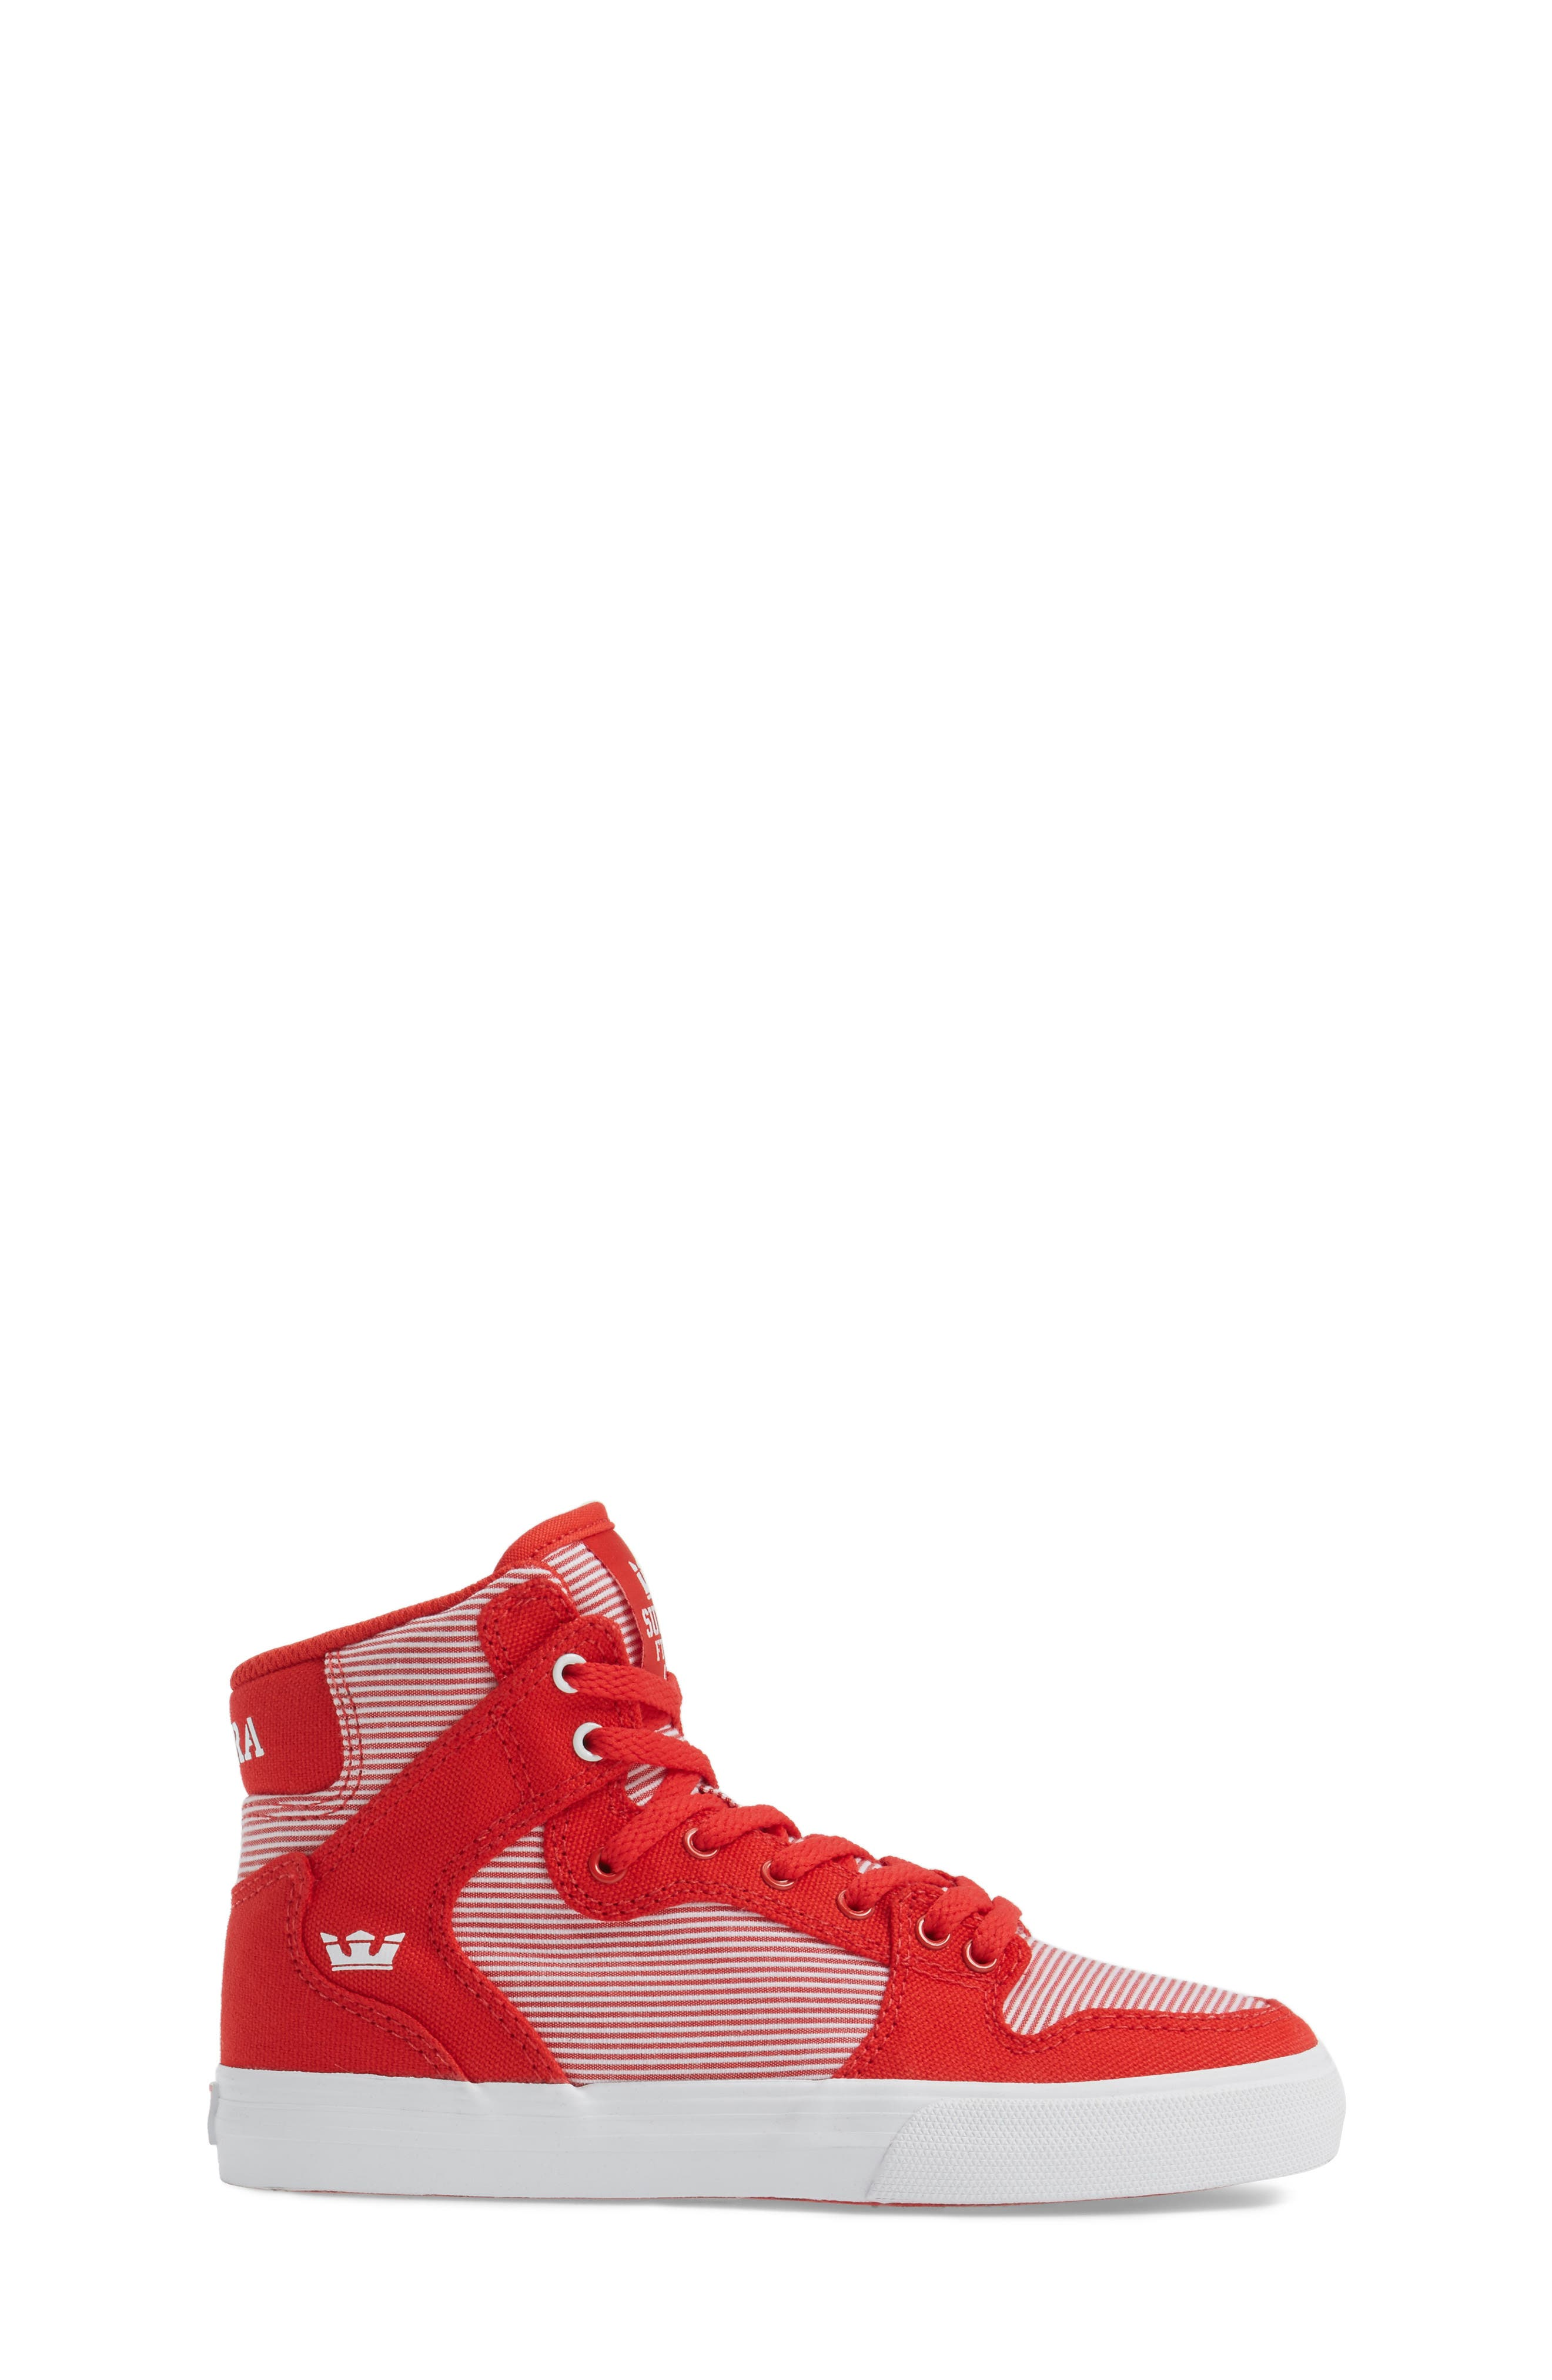 Vaider High Top Sneaker,                             Alternate thumbnail 3, color,                             Red/ White